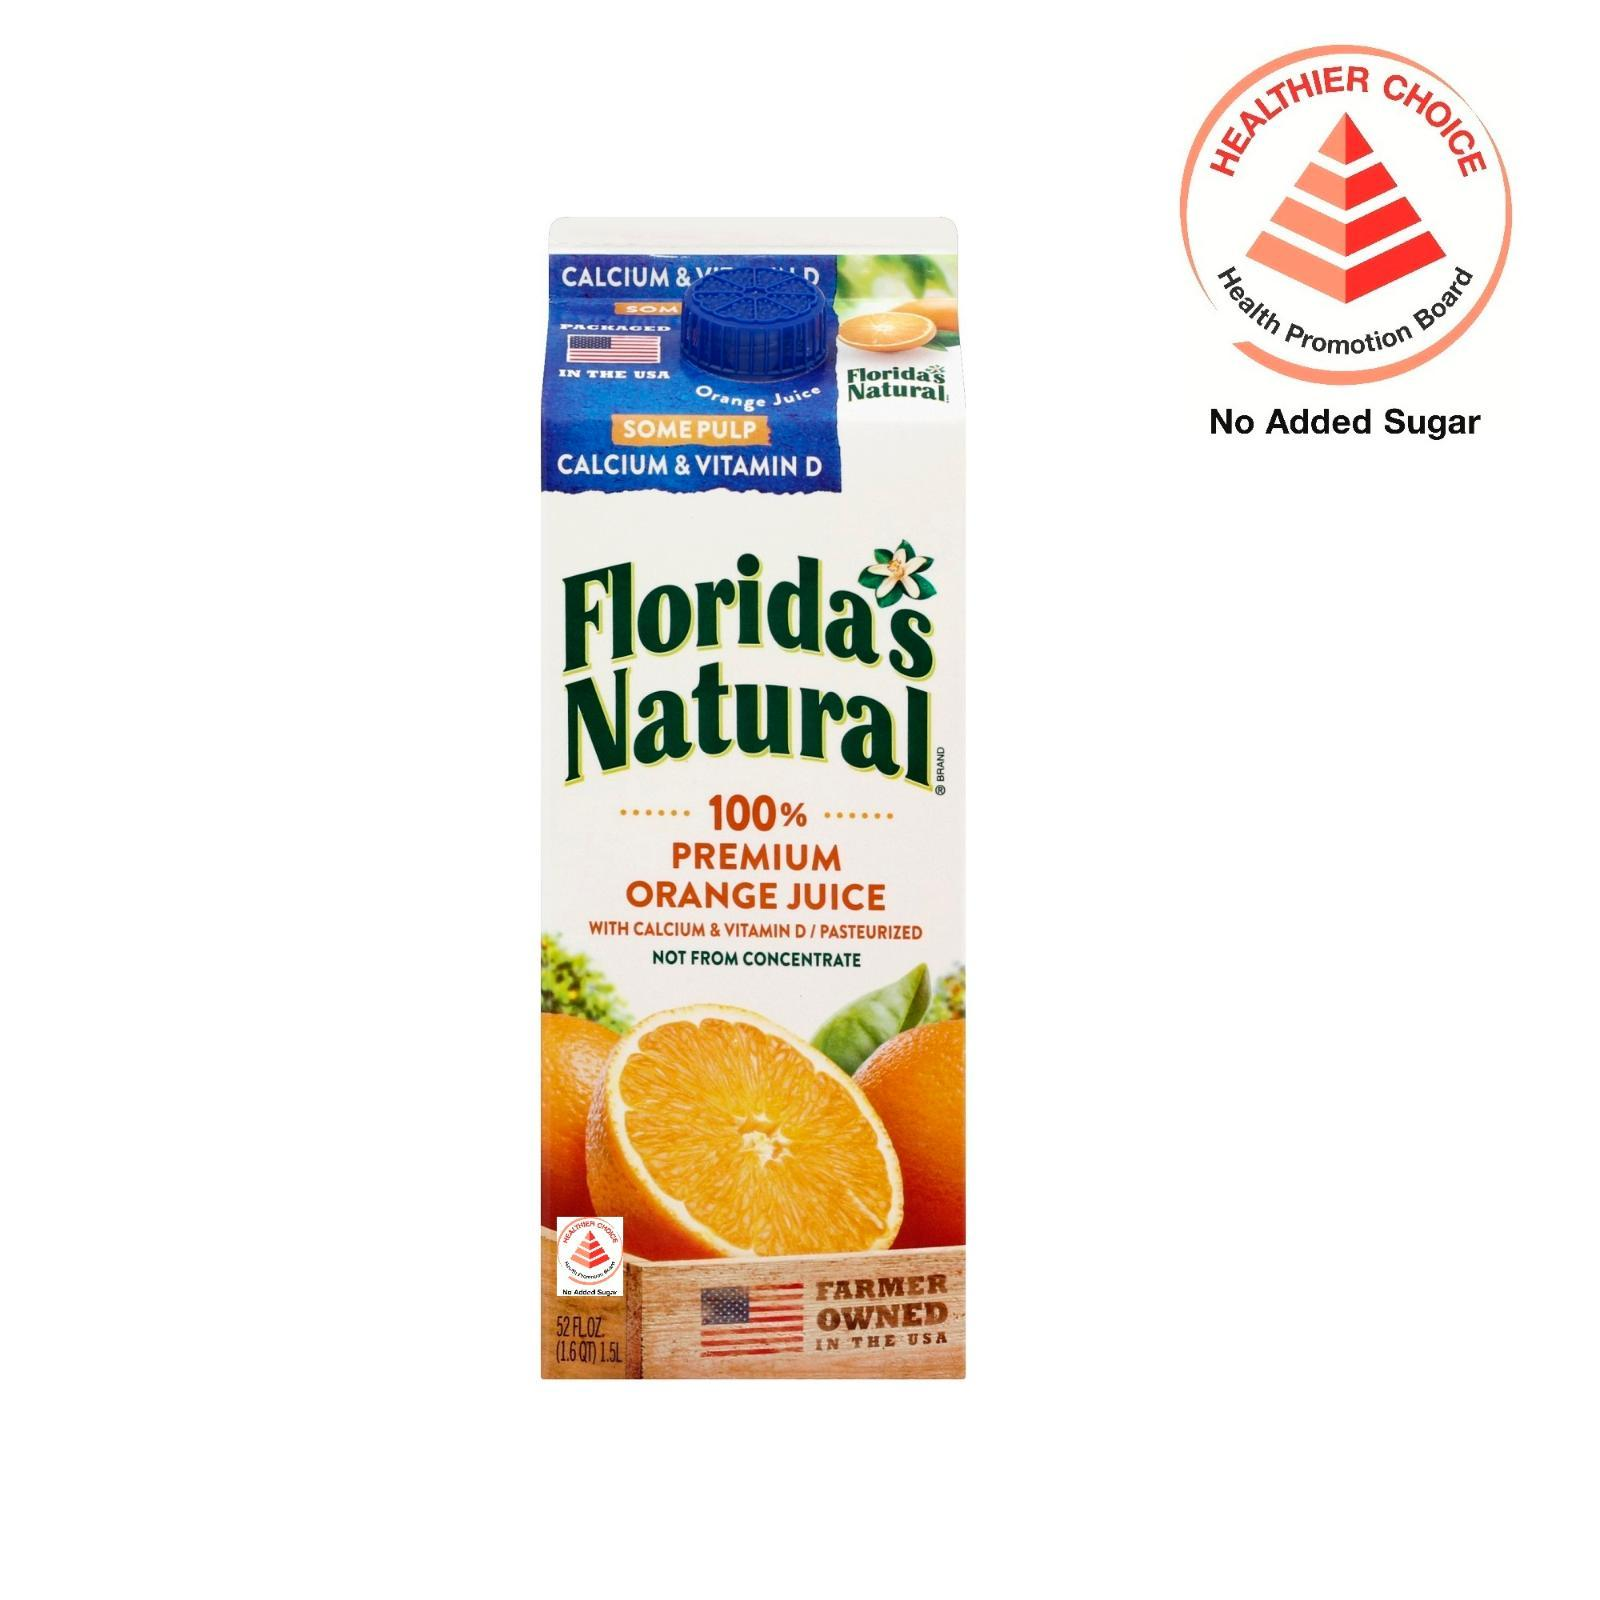 Florida's Natural NFC Home Squeeze with Calcium and Vitamin D (Some Pulp) Orange Juice